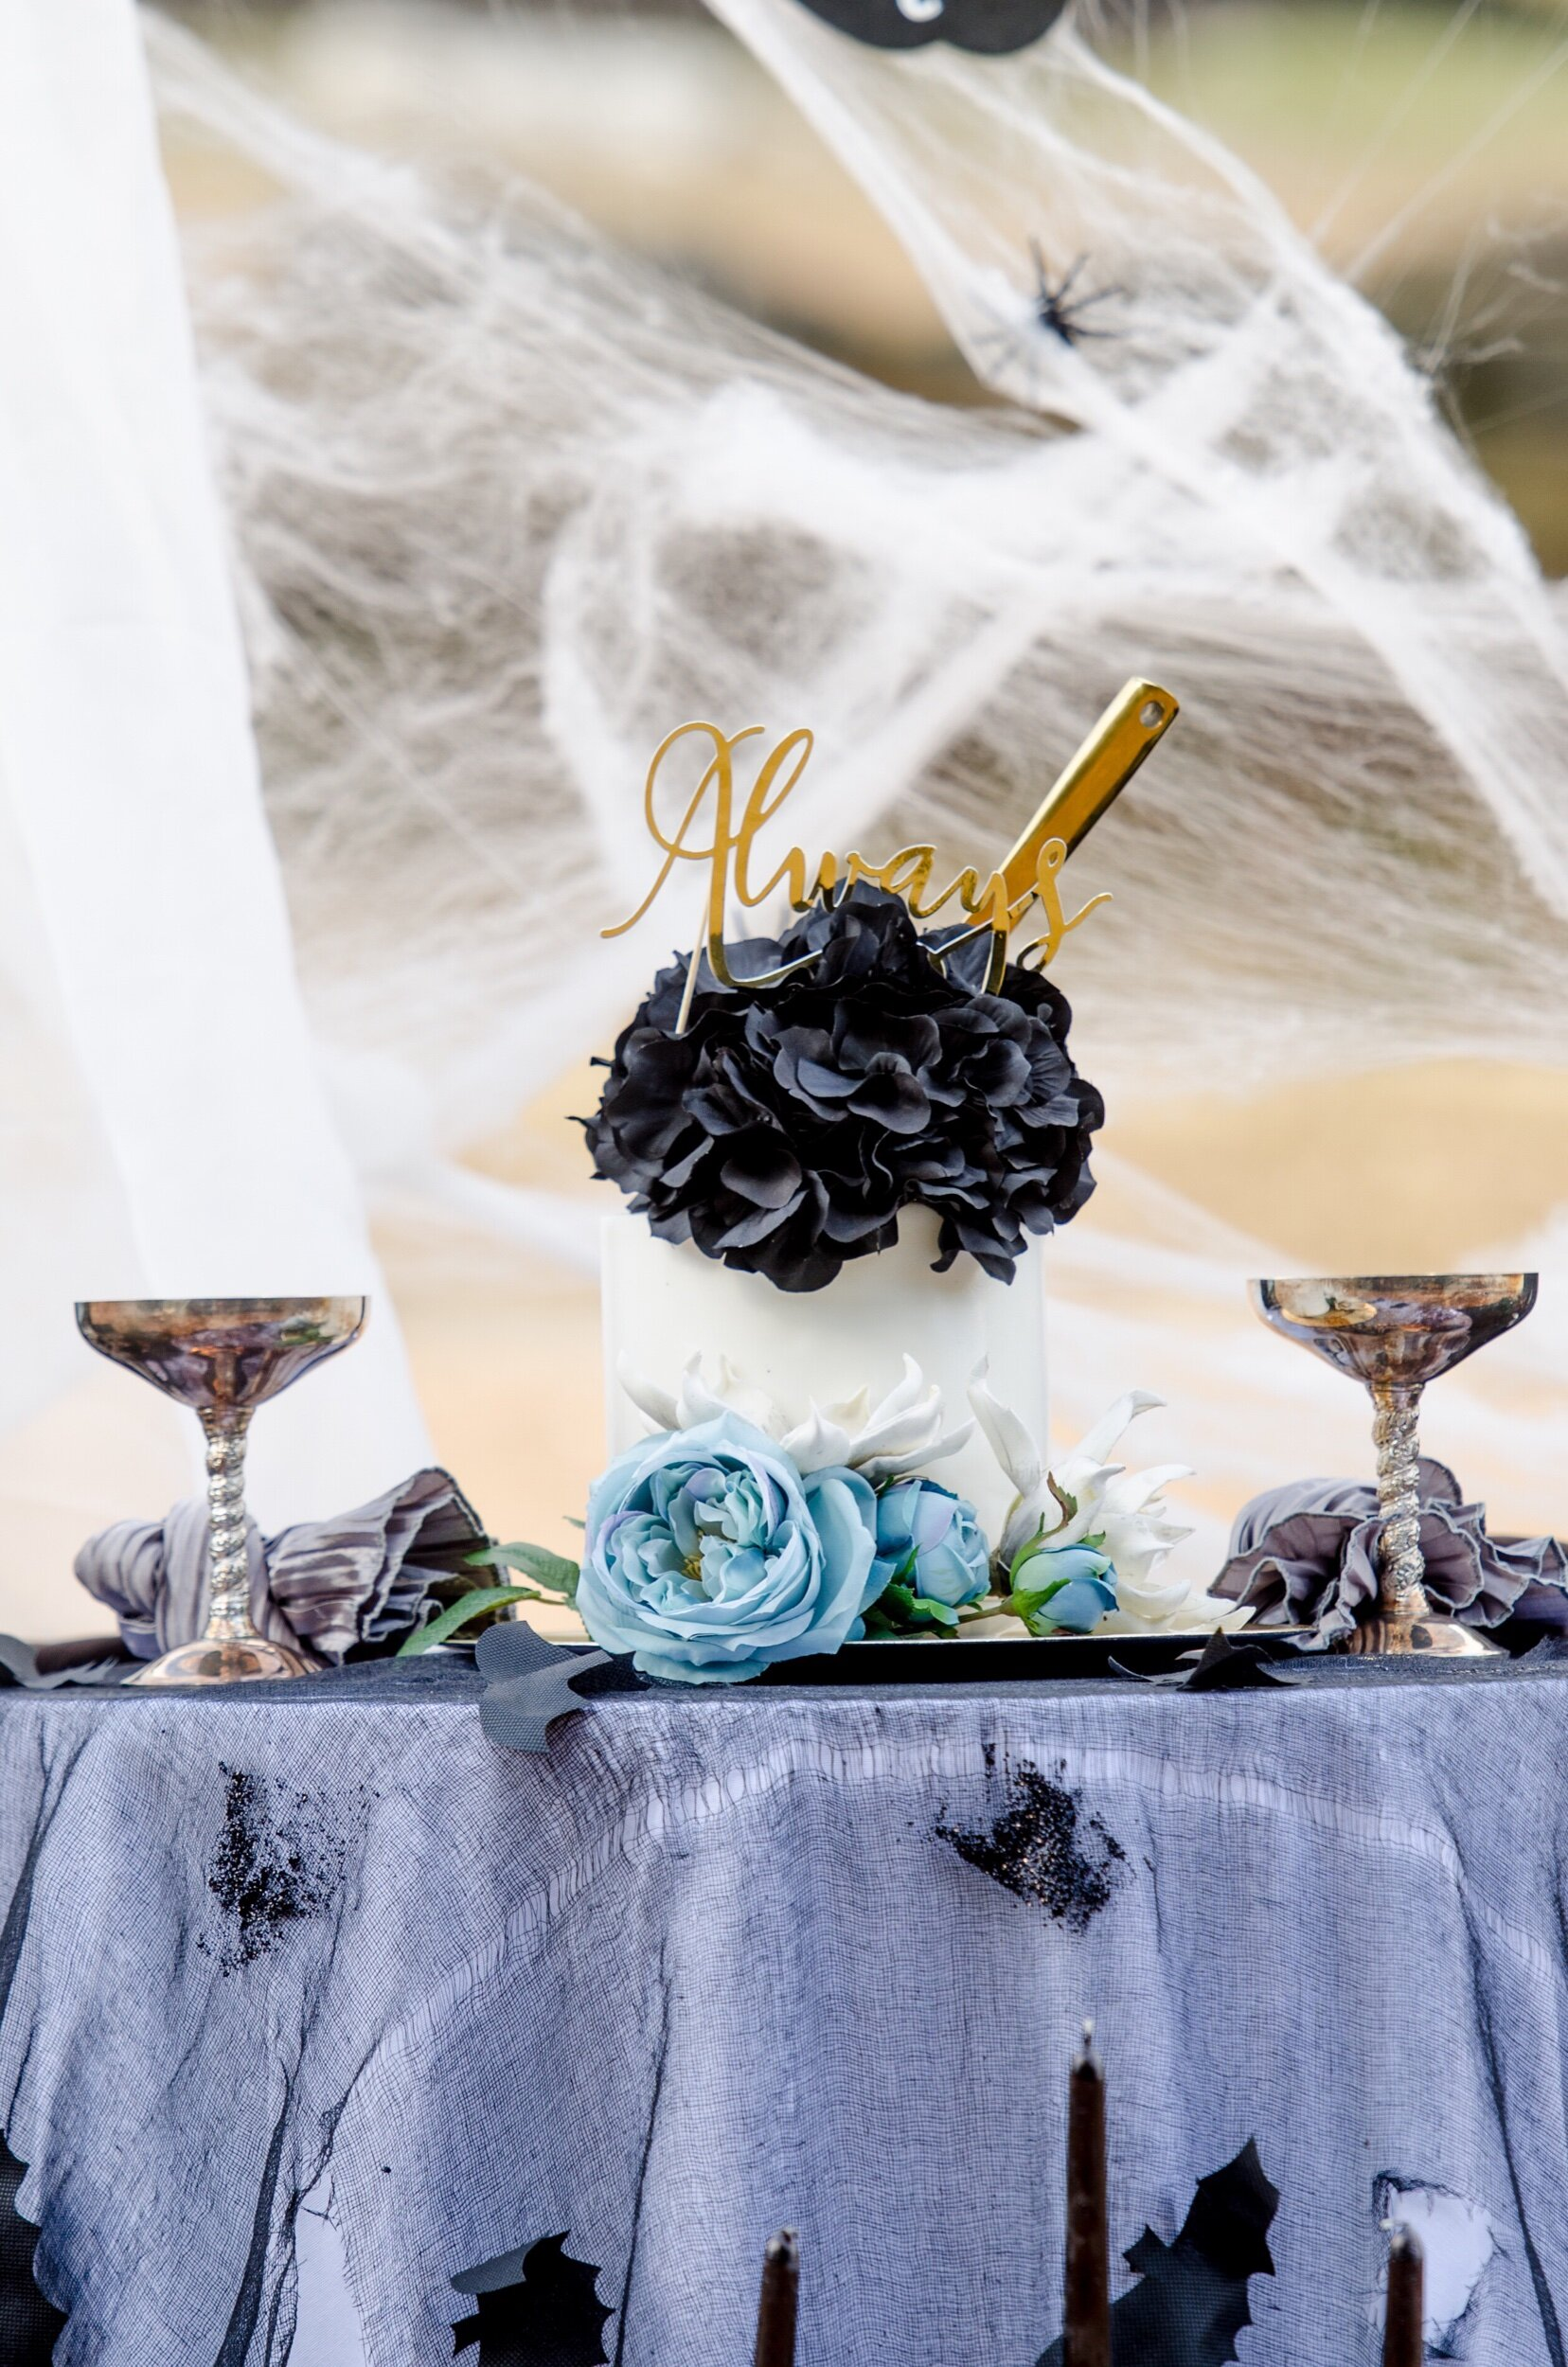 The gothic wedding cake table was draped with a gauzy black cloth with attached bats, topped with gothic style wine goblets. Styled by Mint Event Design, Austin Texas party stylist